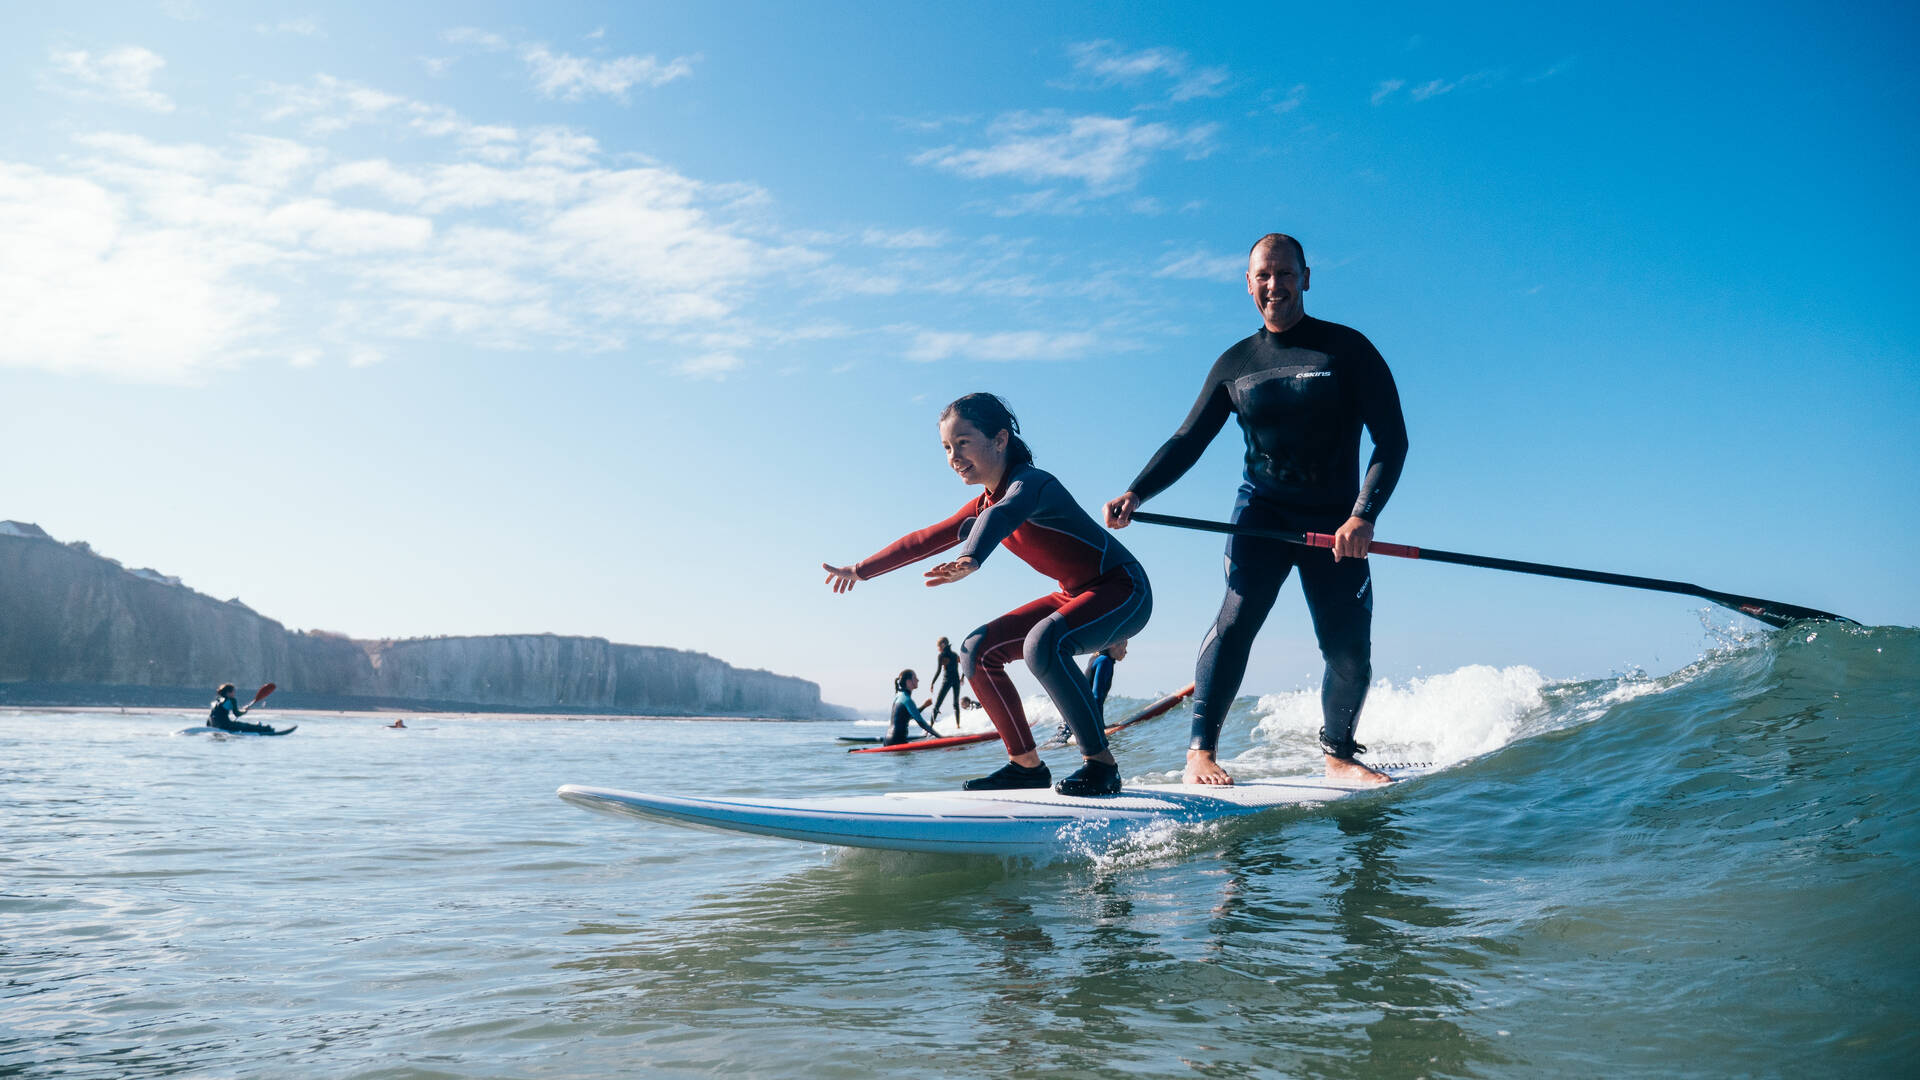 Le stand-up paddle version surf